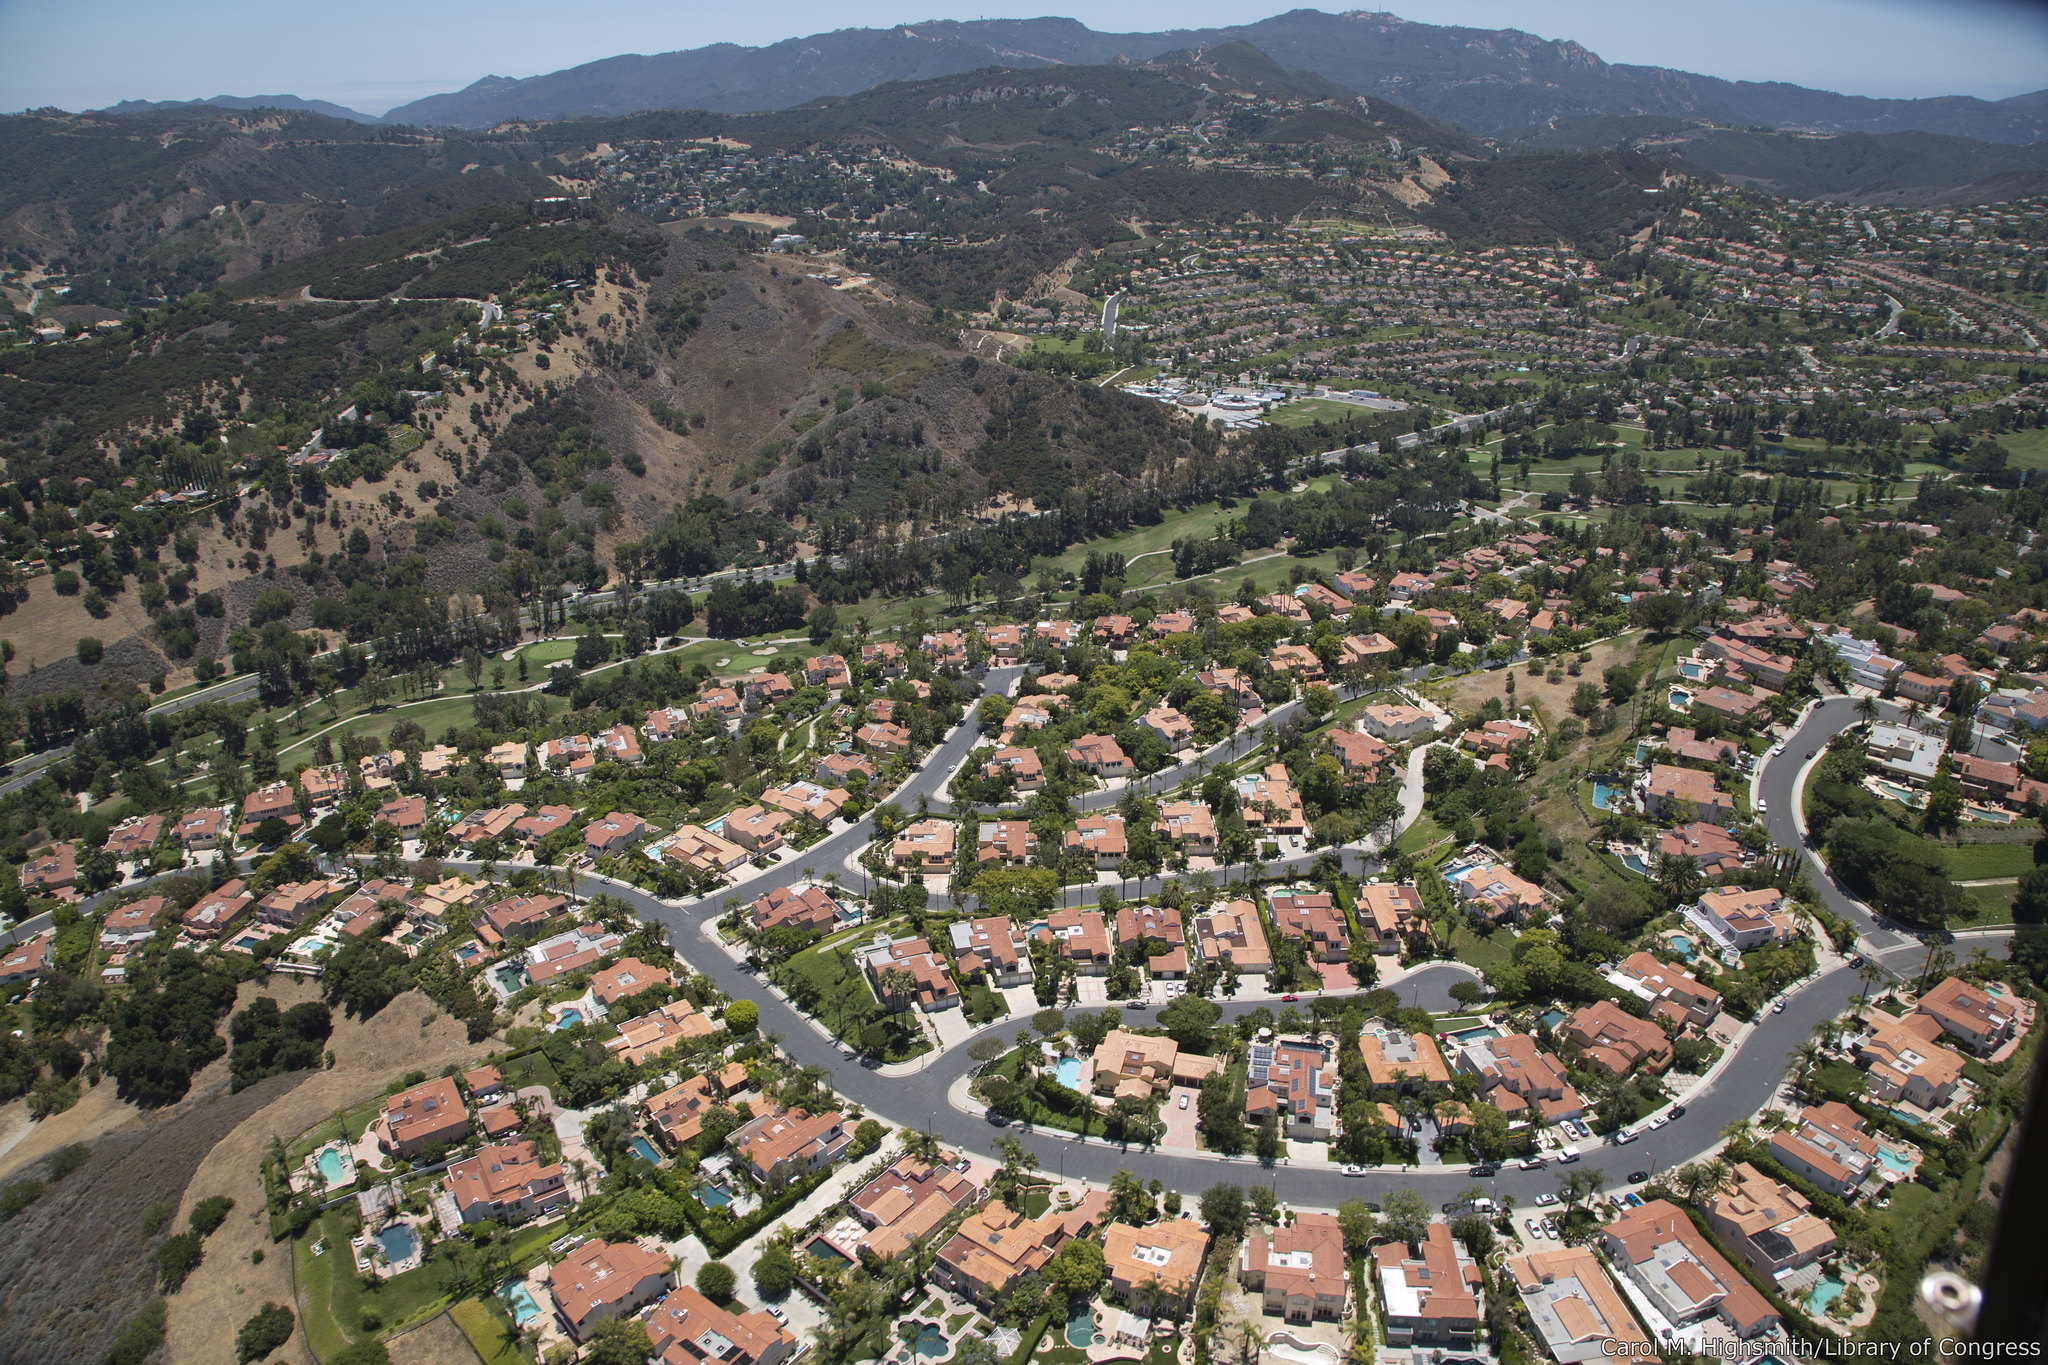 Homebuilding has trailed population growth in all U.S. cities including Los Angeles. (Carol M. Highsmith/Department of State)